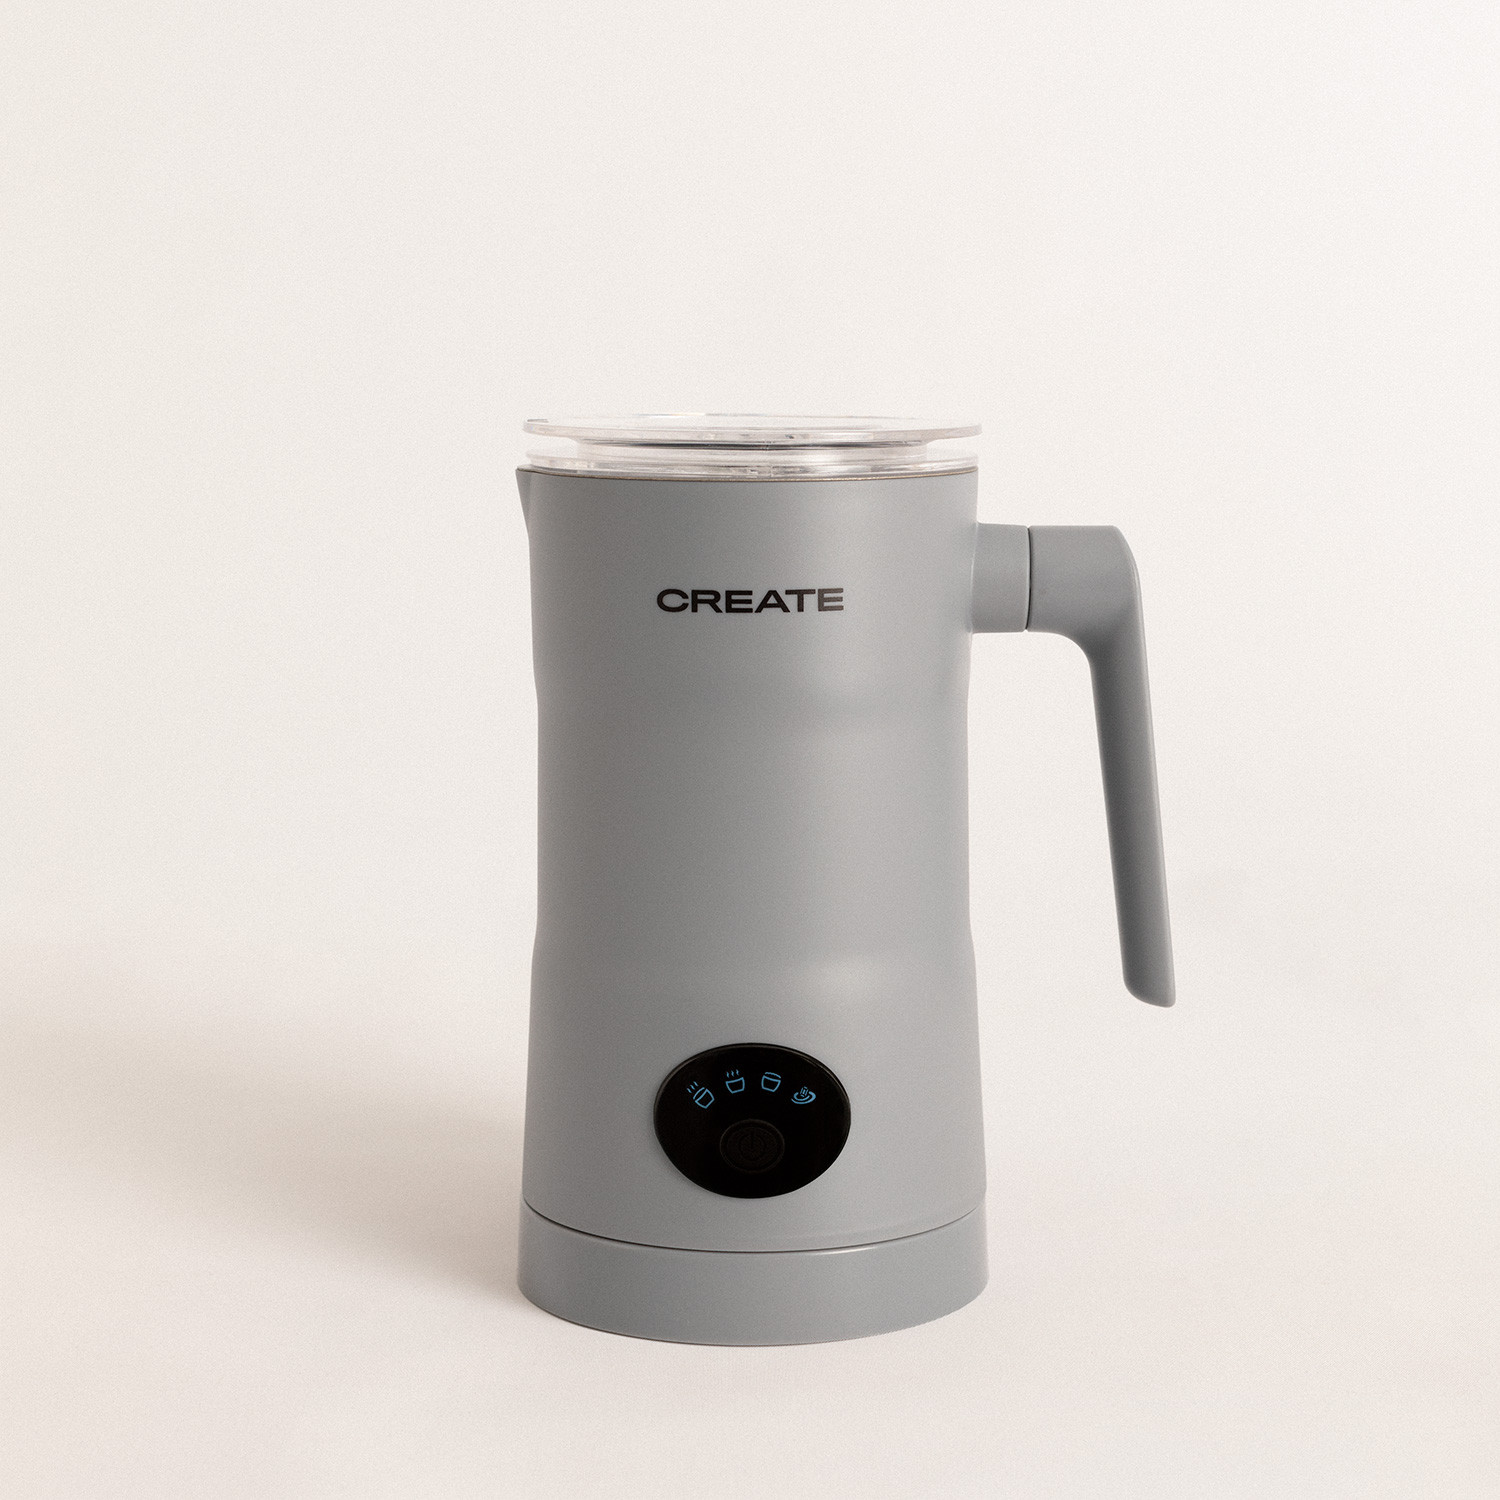 MILK FROTHER PRO - Milk and chocolate warmer frother, imagen de galería 1